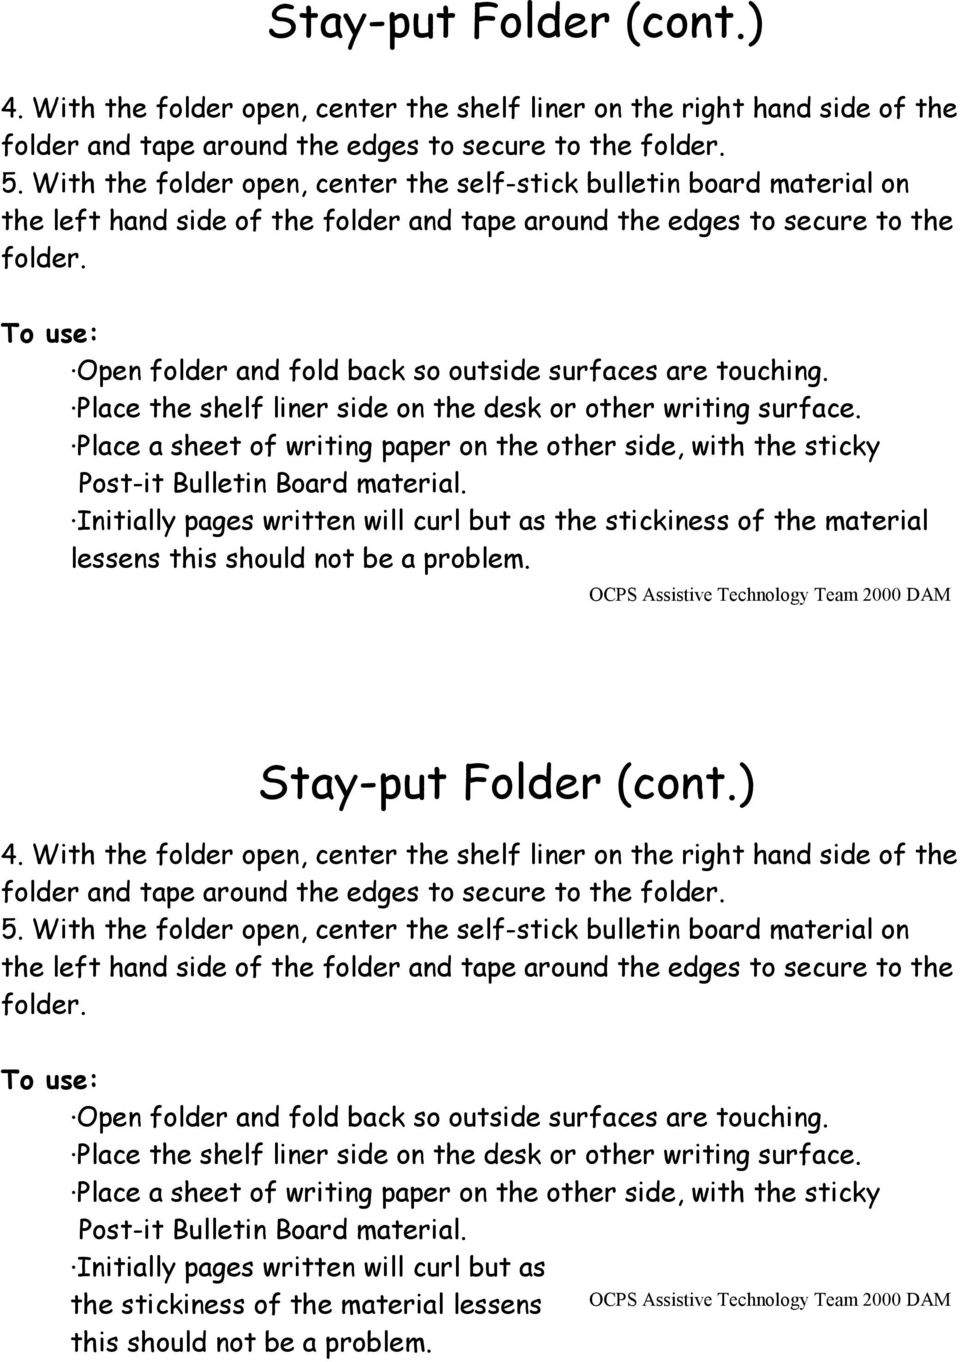 To use: Open folder and fold back so outside surfaces are touching. Place the shelf liner side on the desk or other writing surface.